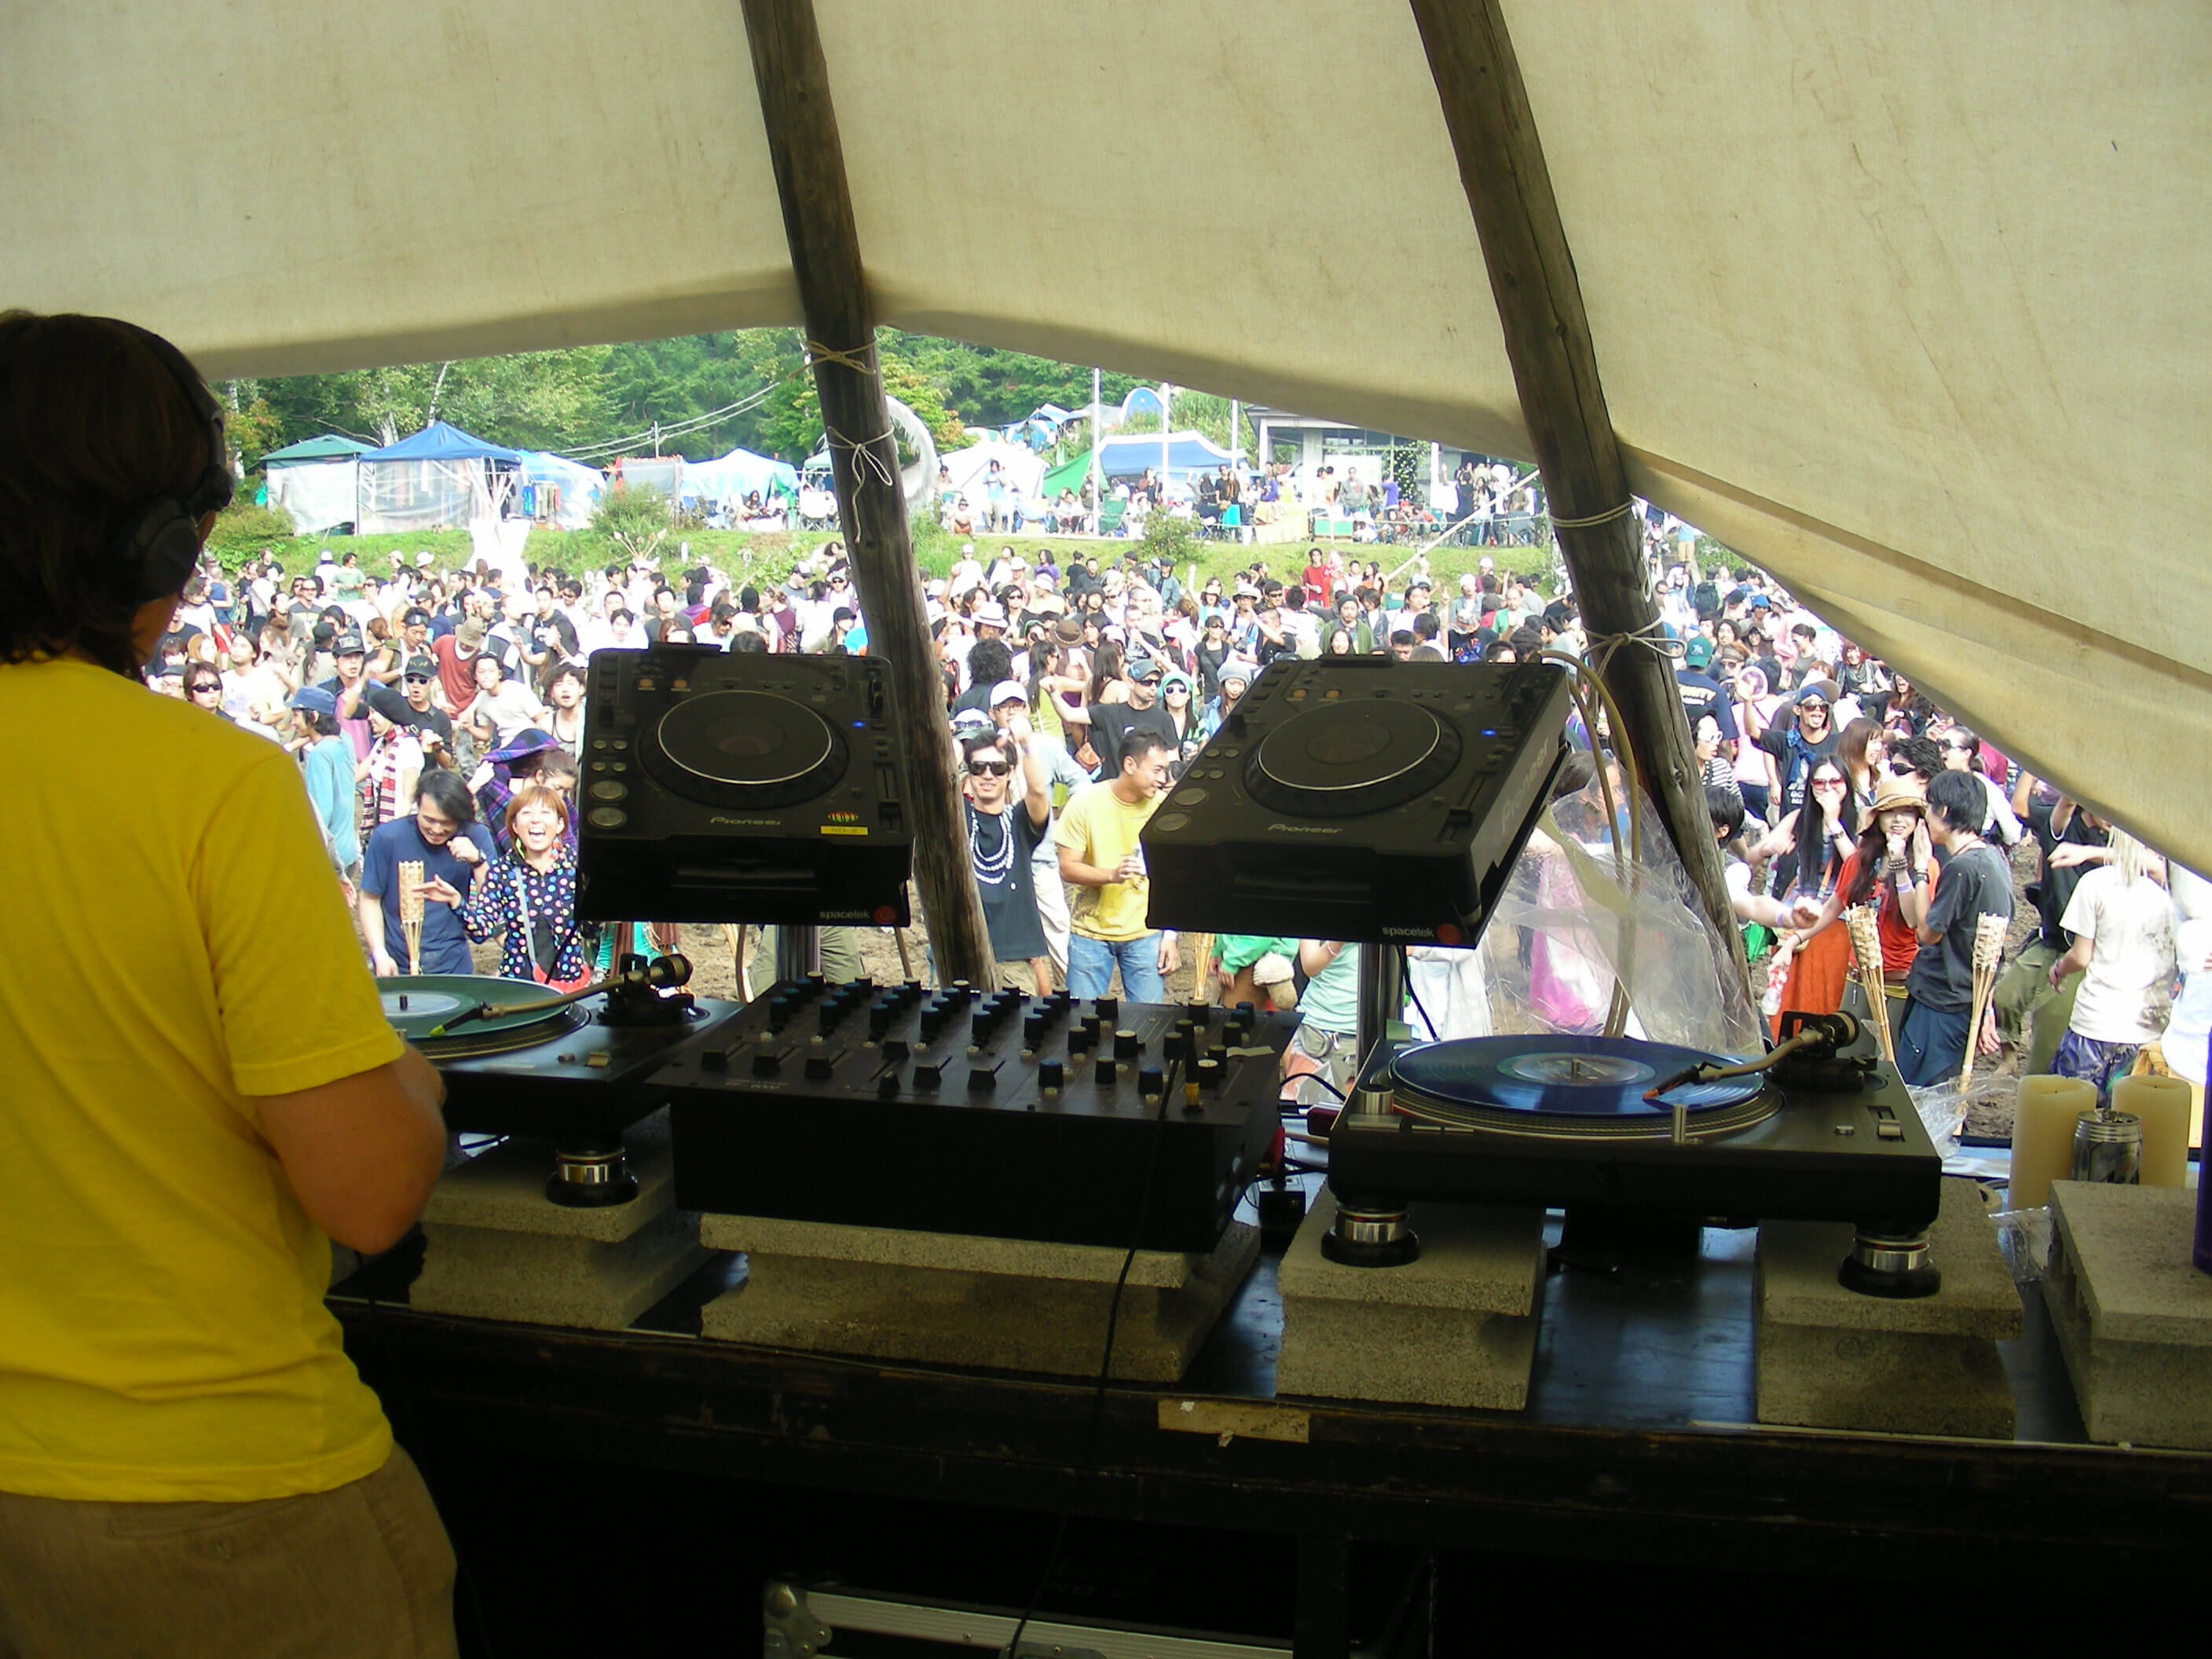 Ben Annand at Labyrinth Festival Japan 2008